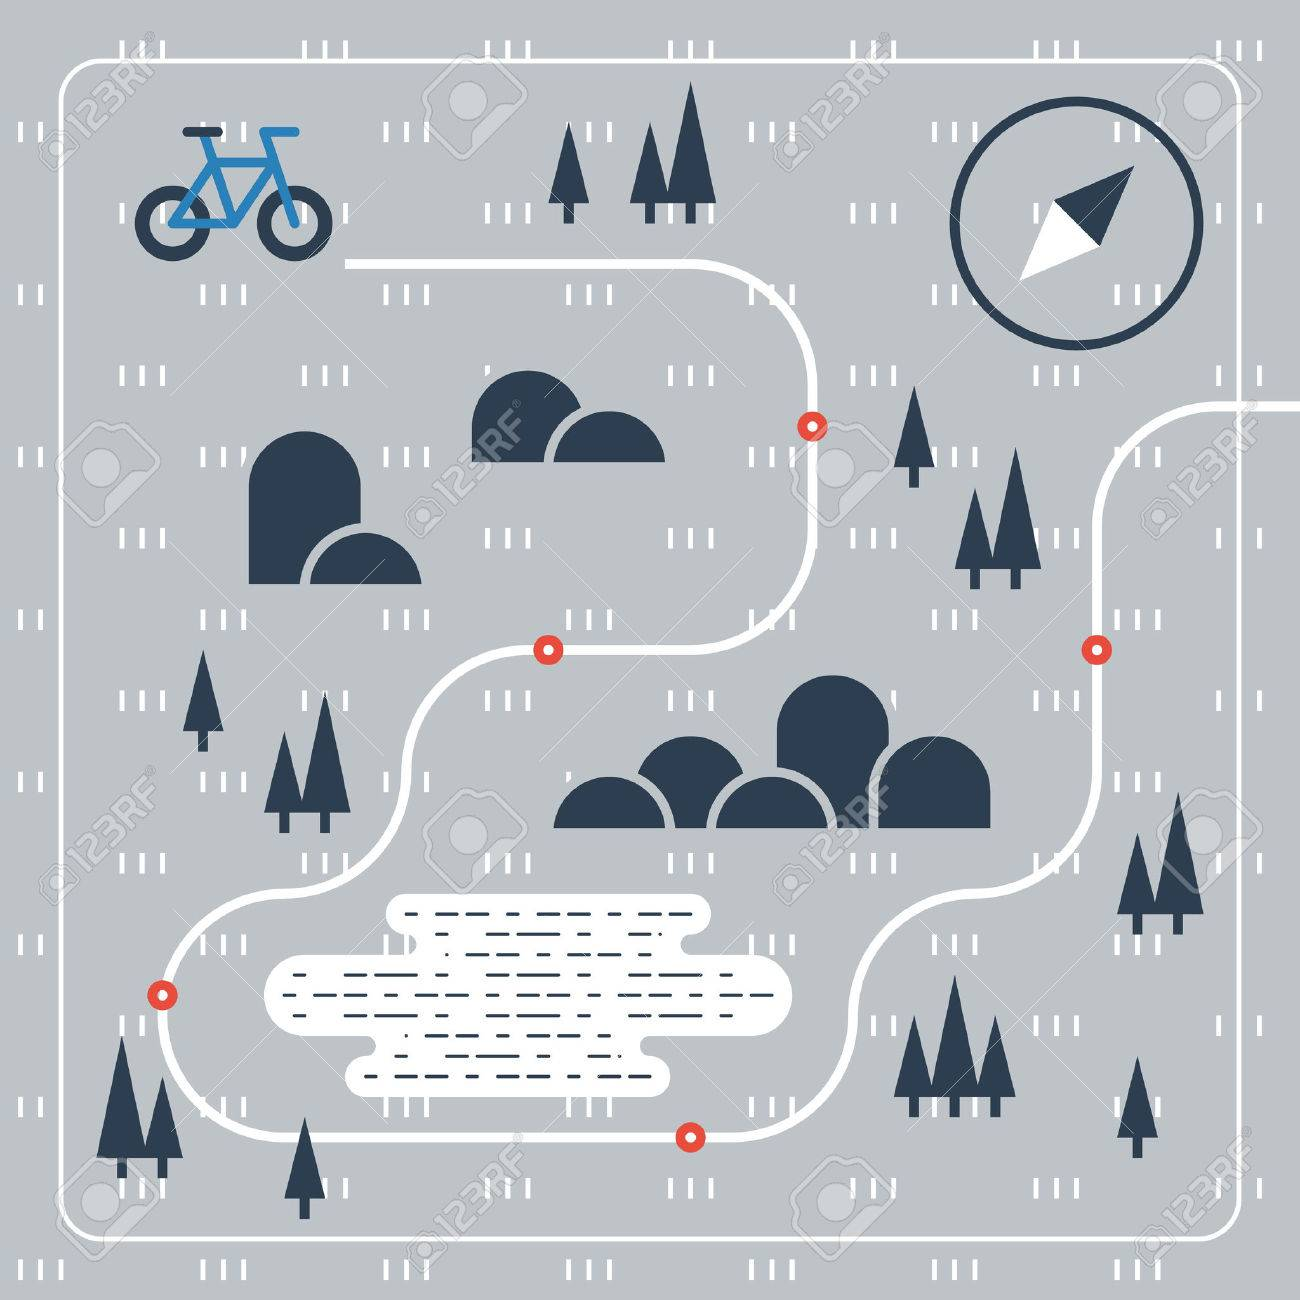 Cross country bicycle map - 49711858